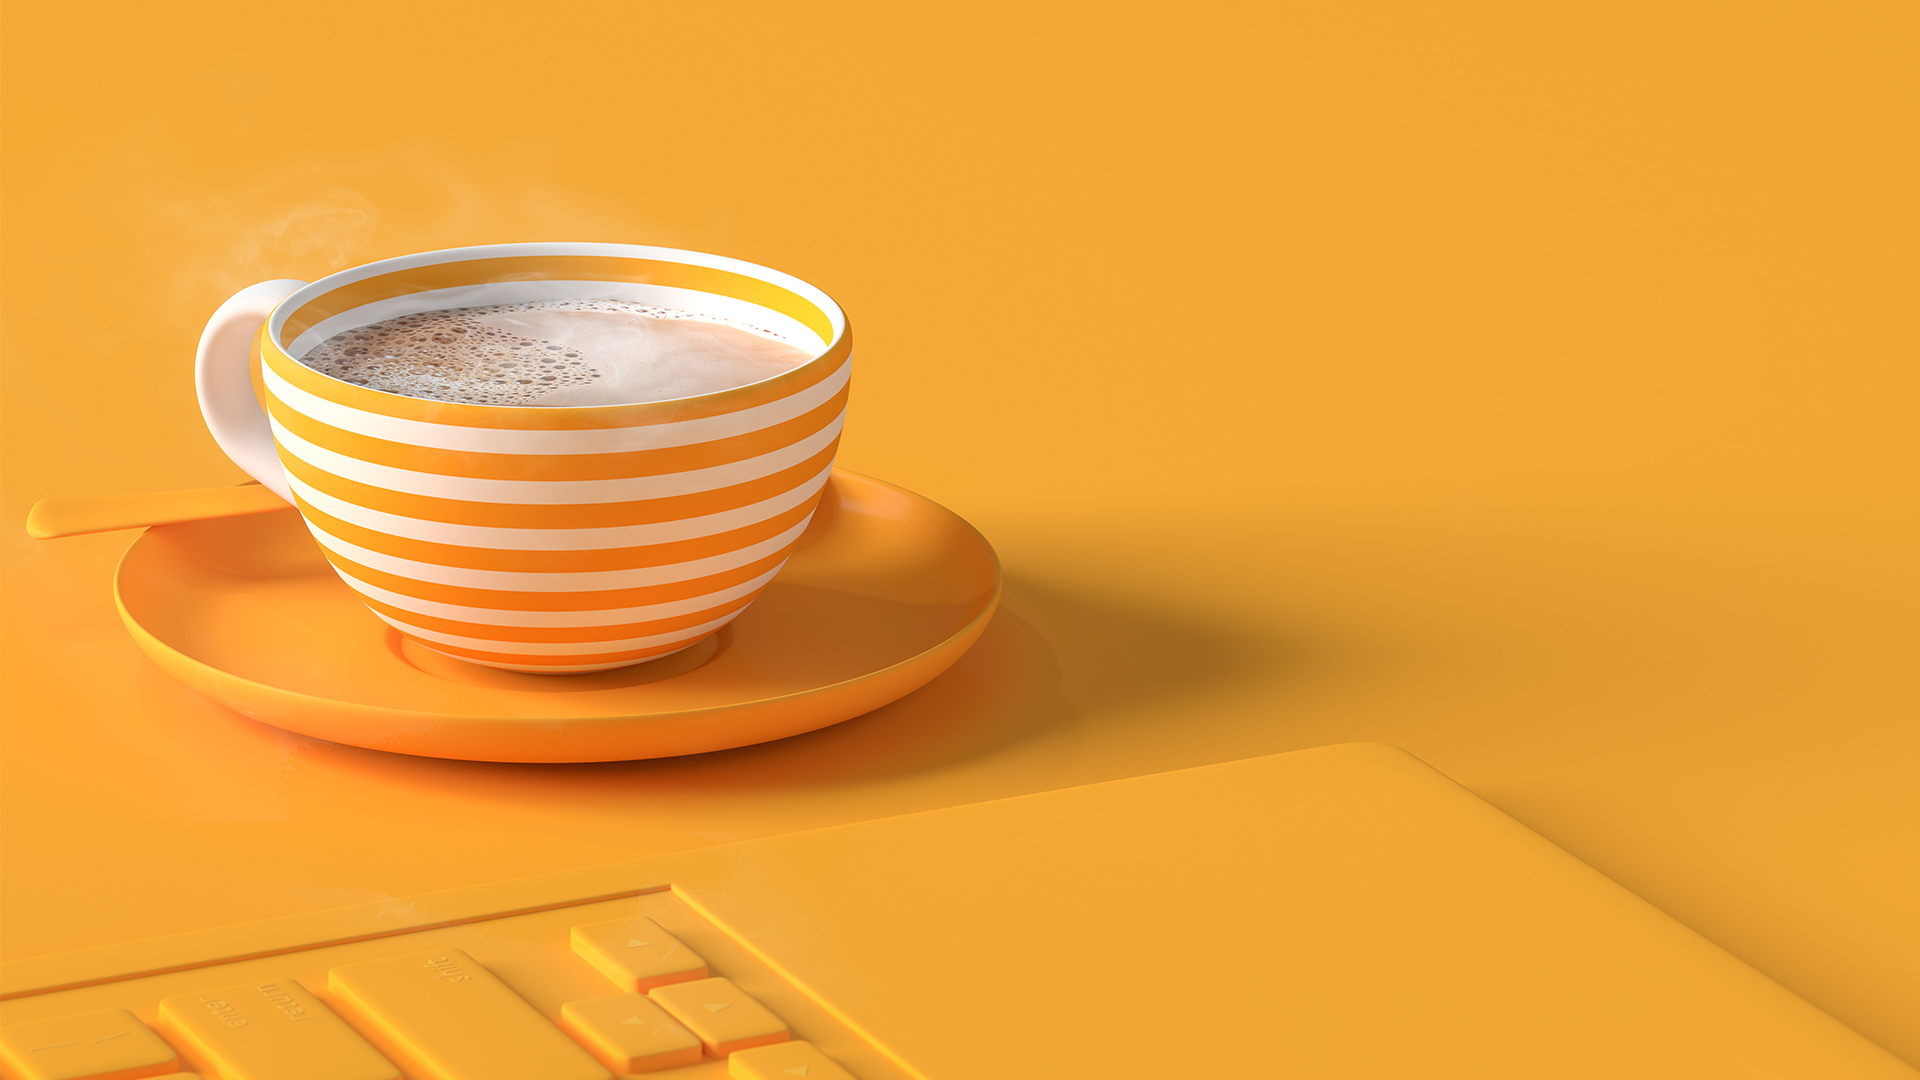 Yellow keyboard and white and yellow striped mug on saucer with steaming coffee